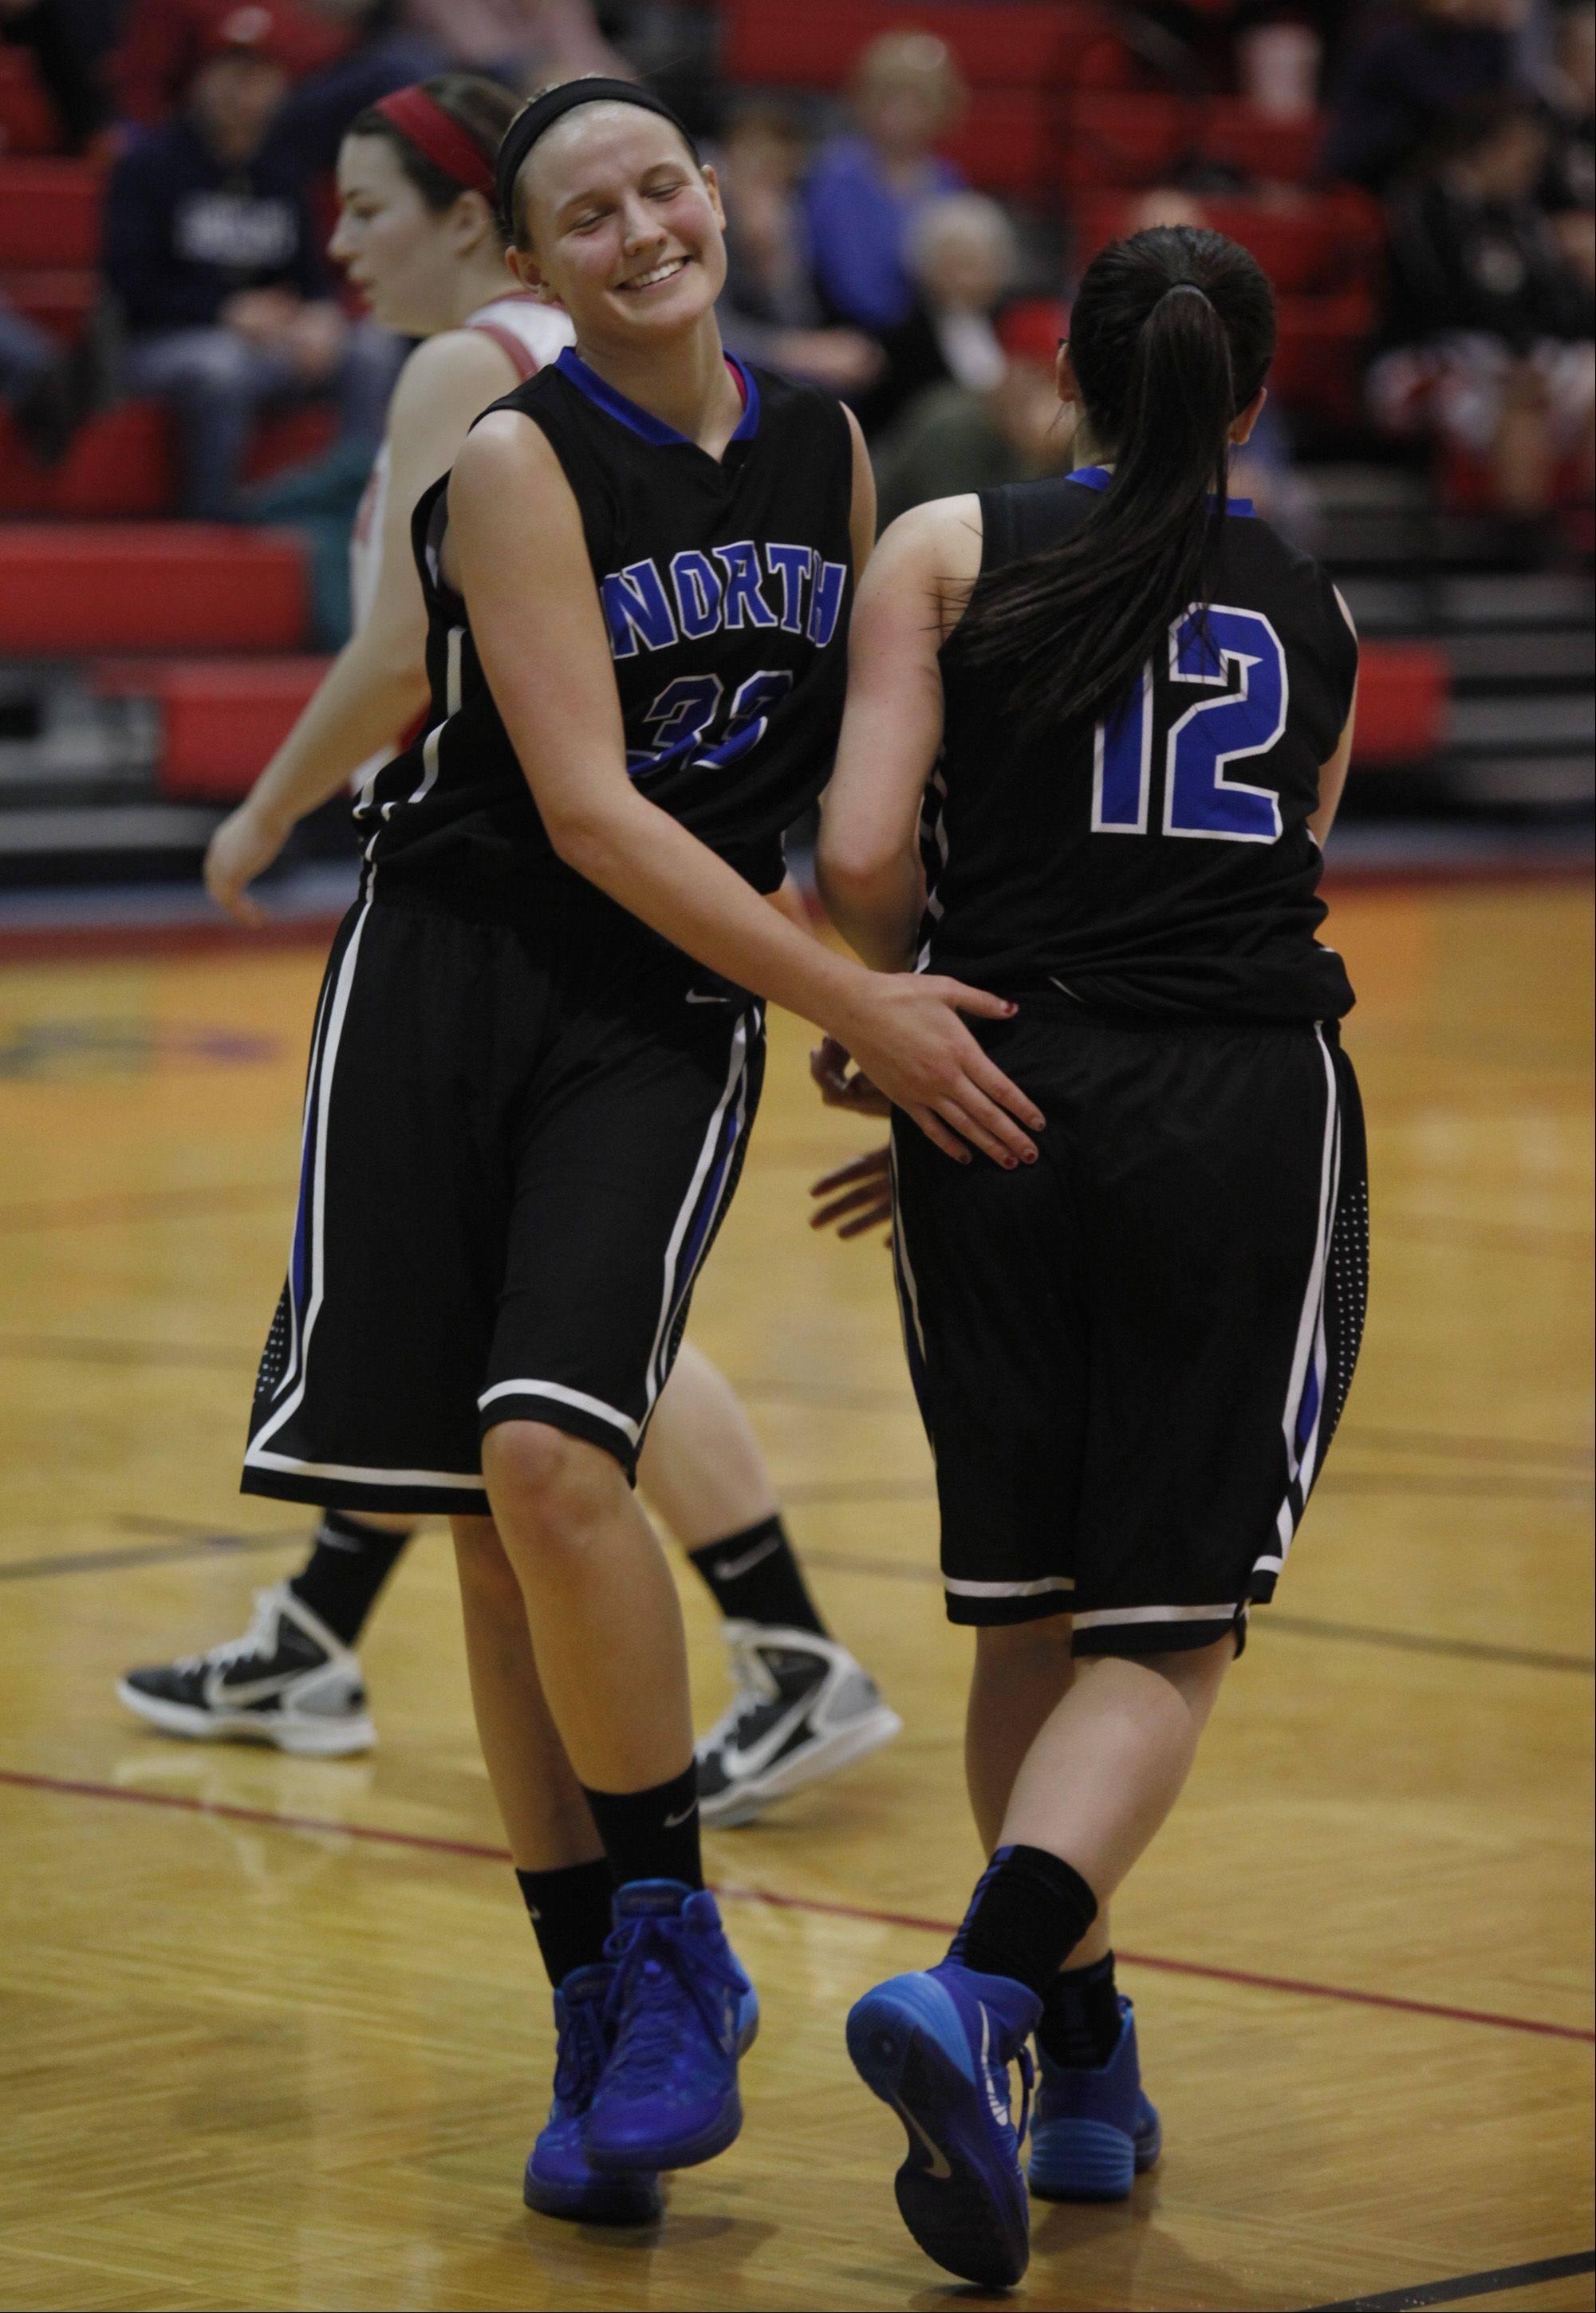 St. Charles North forward Nichole Davidson encourages her teammate, guard Sam Henry (12) after Henry took a hard foul while driving to the basket on the previous play Monday during the Dundee-Crown Charger Classic girls basketball tournament.